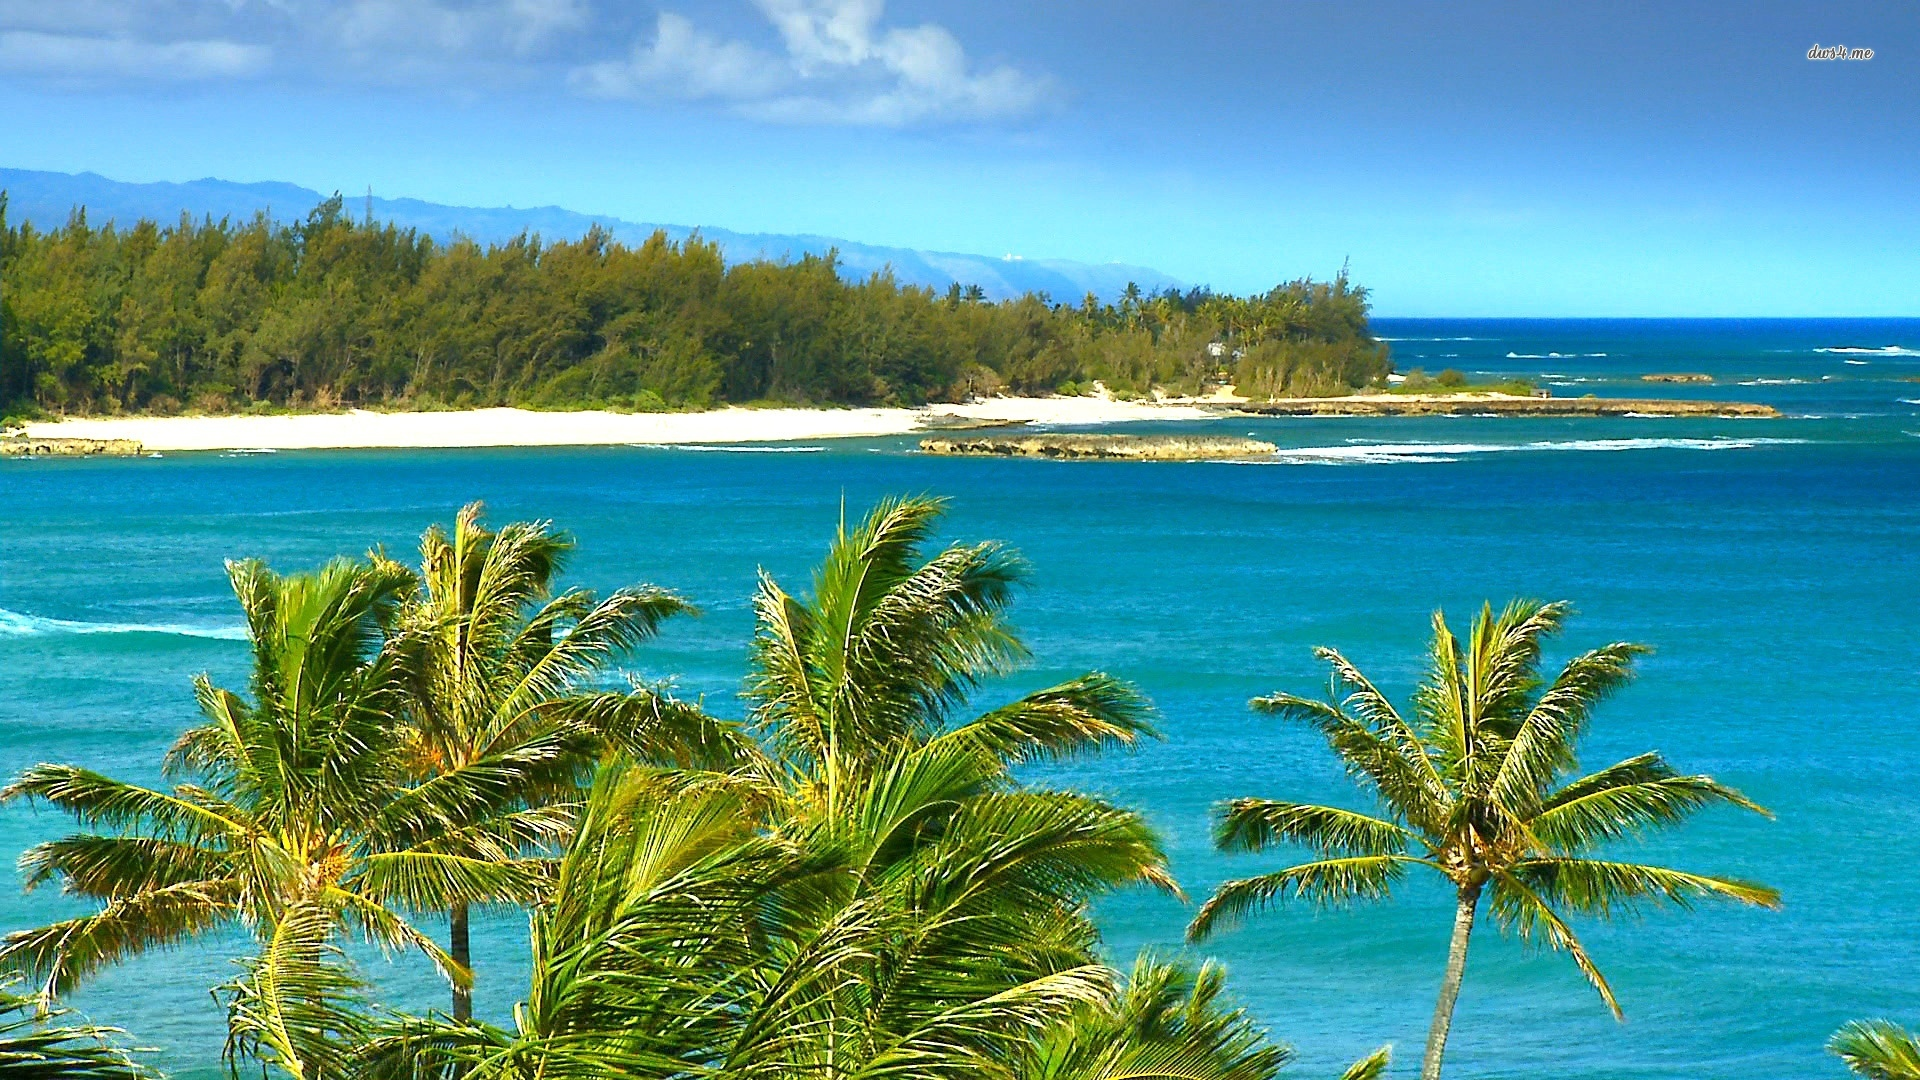 windy beach in hawaii Desktop Backgrounds for HD 1920x1080